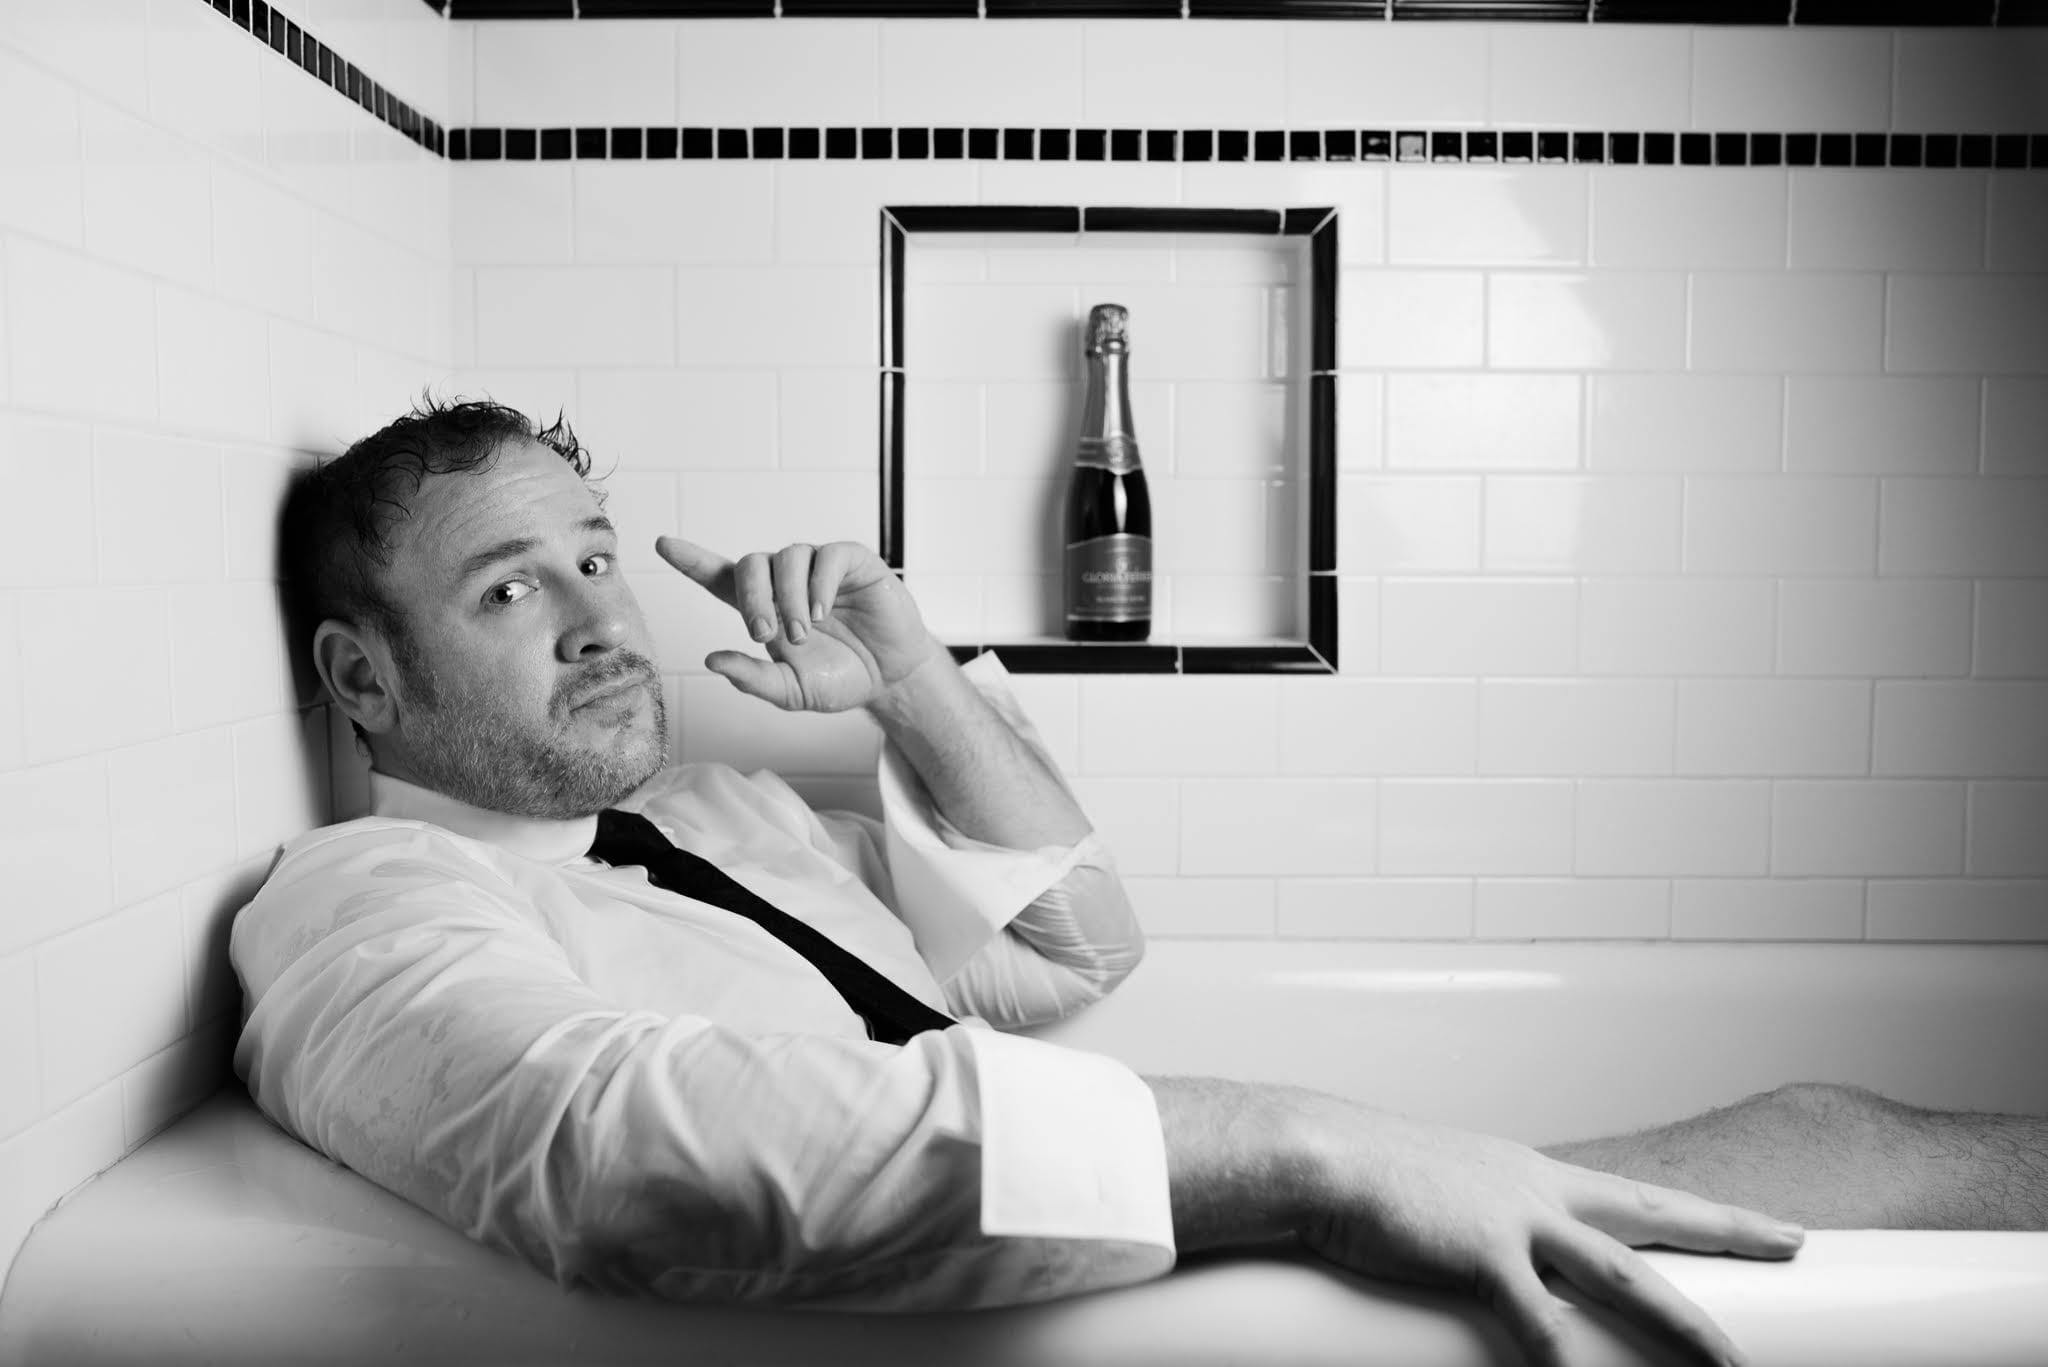 Lucas Meachem in the Bathtub with Champagne